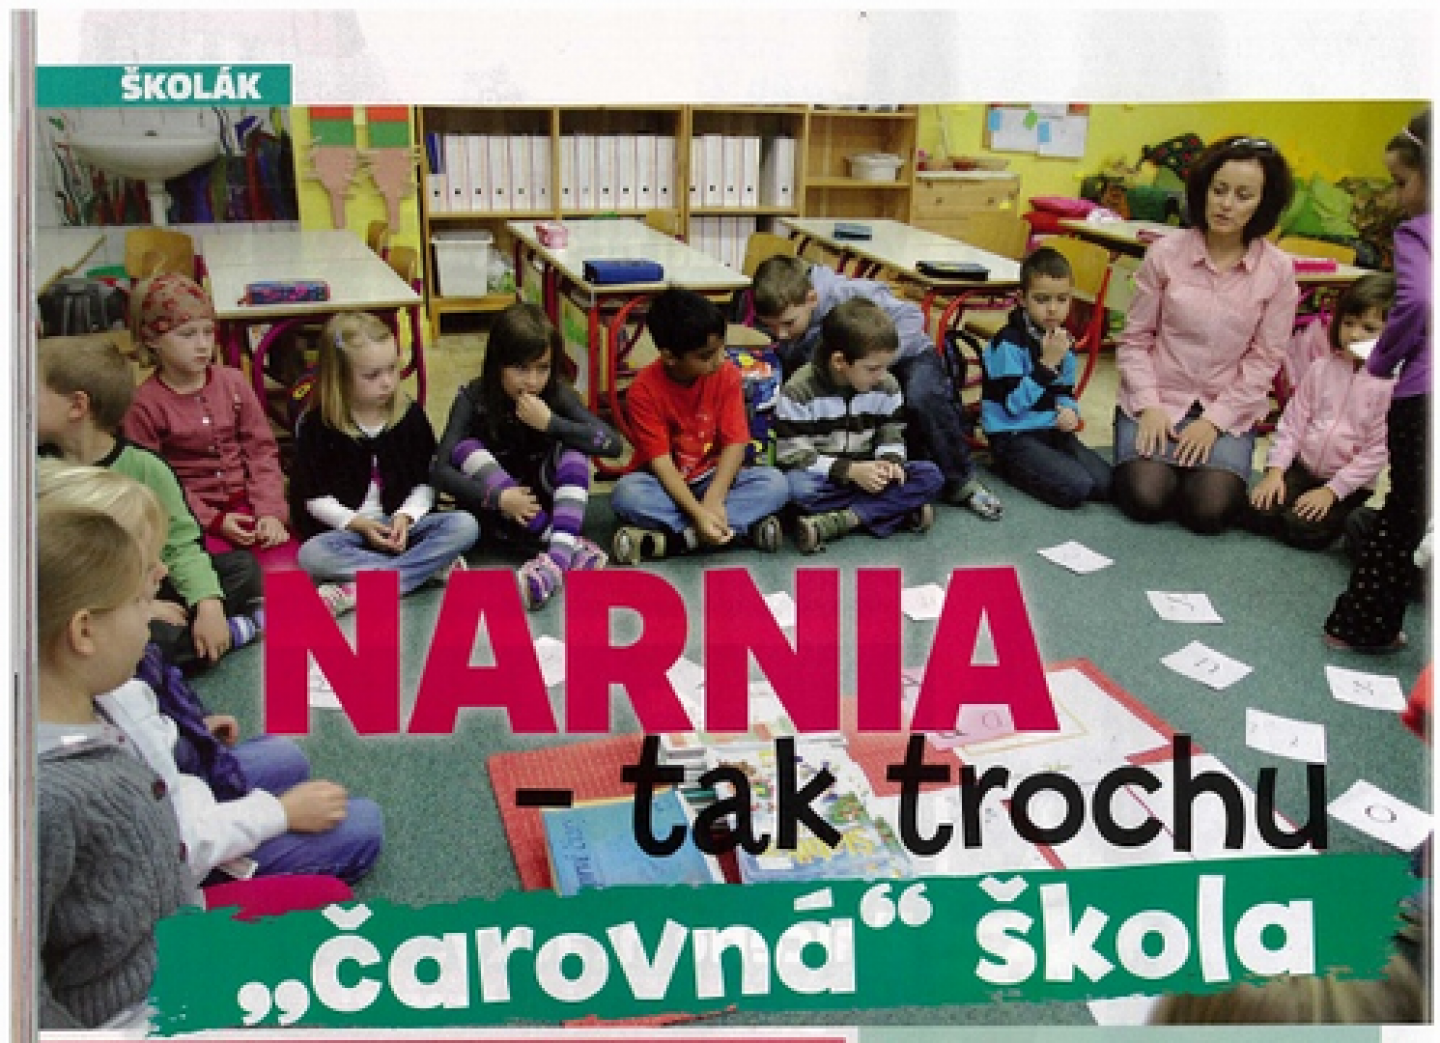 Narnia carovna skola do blogu